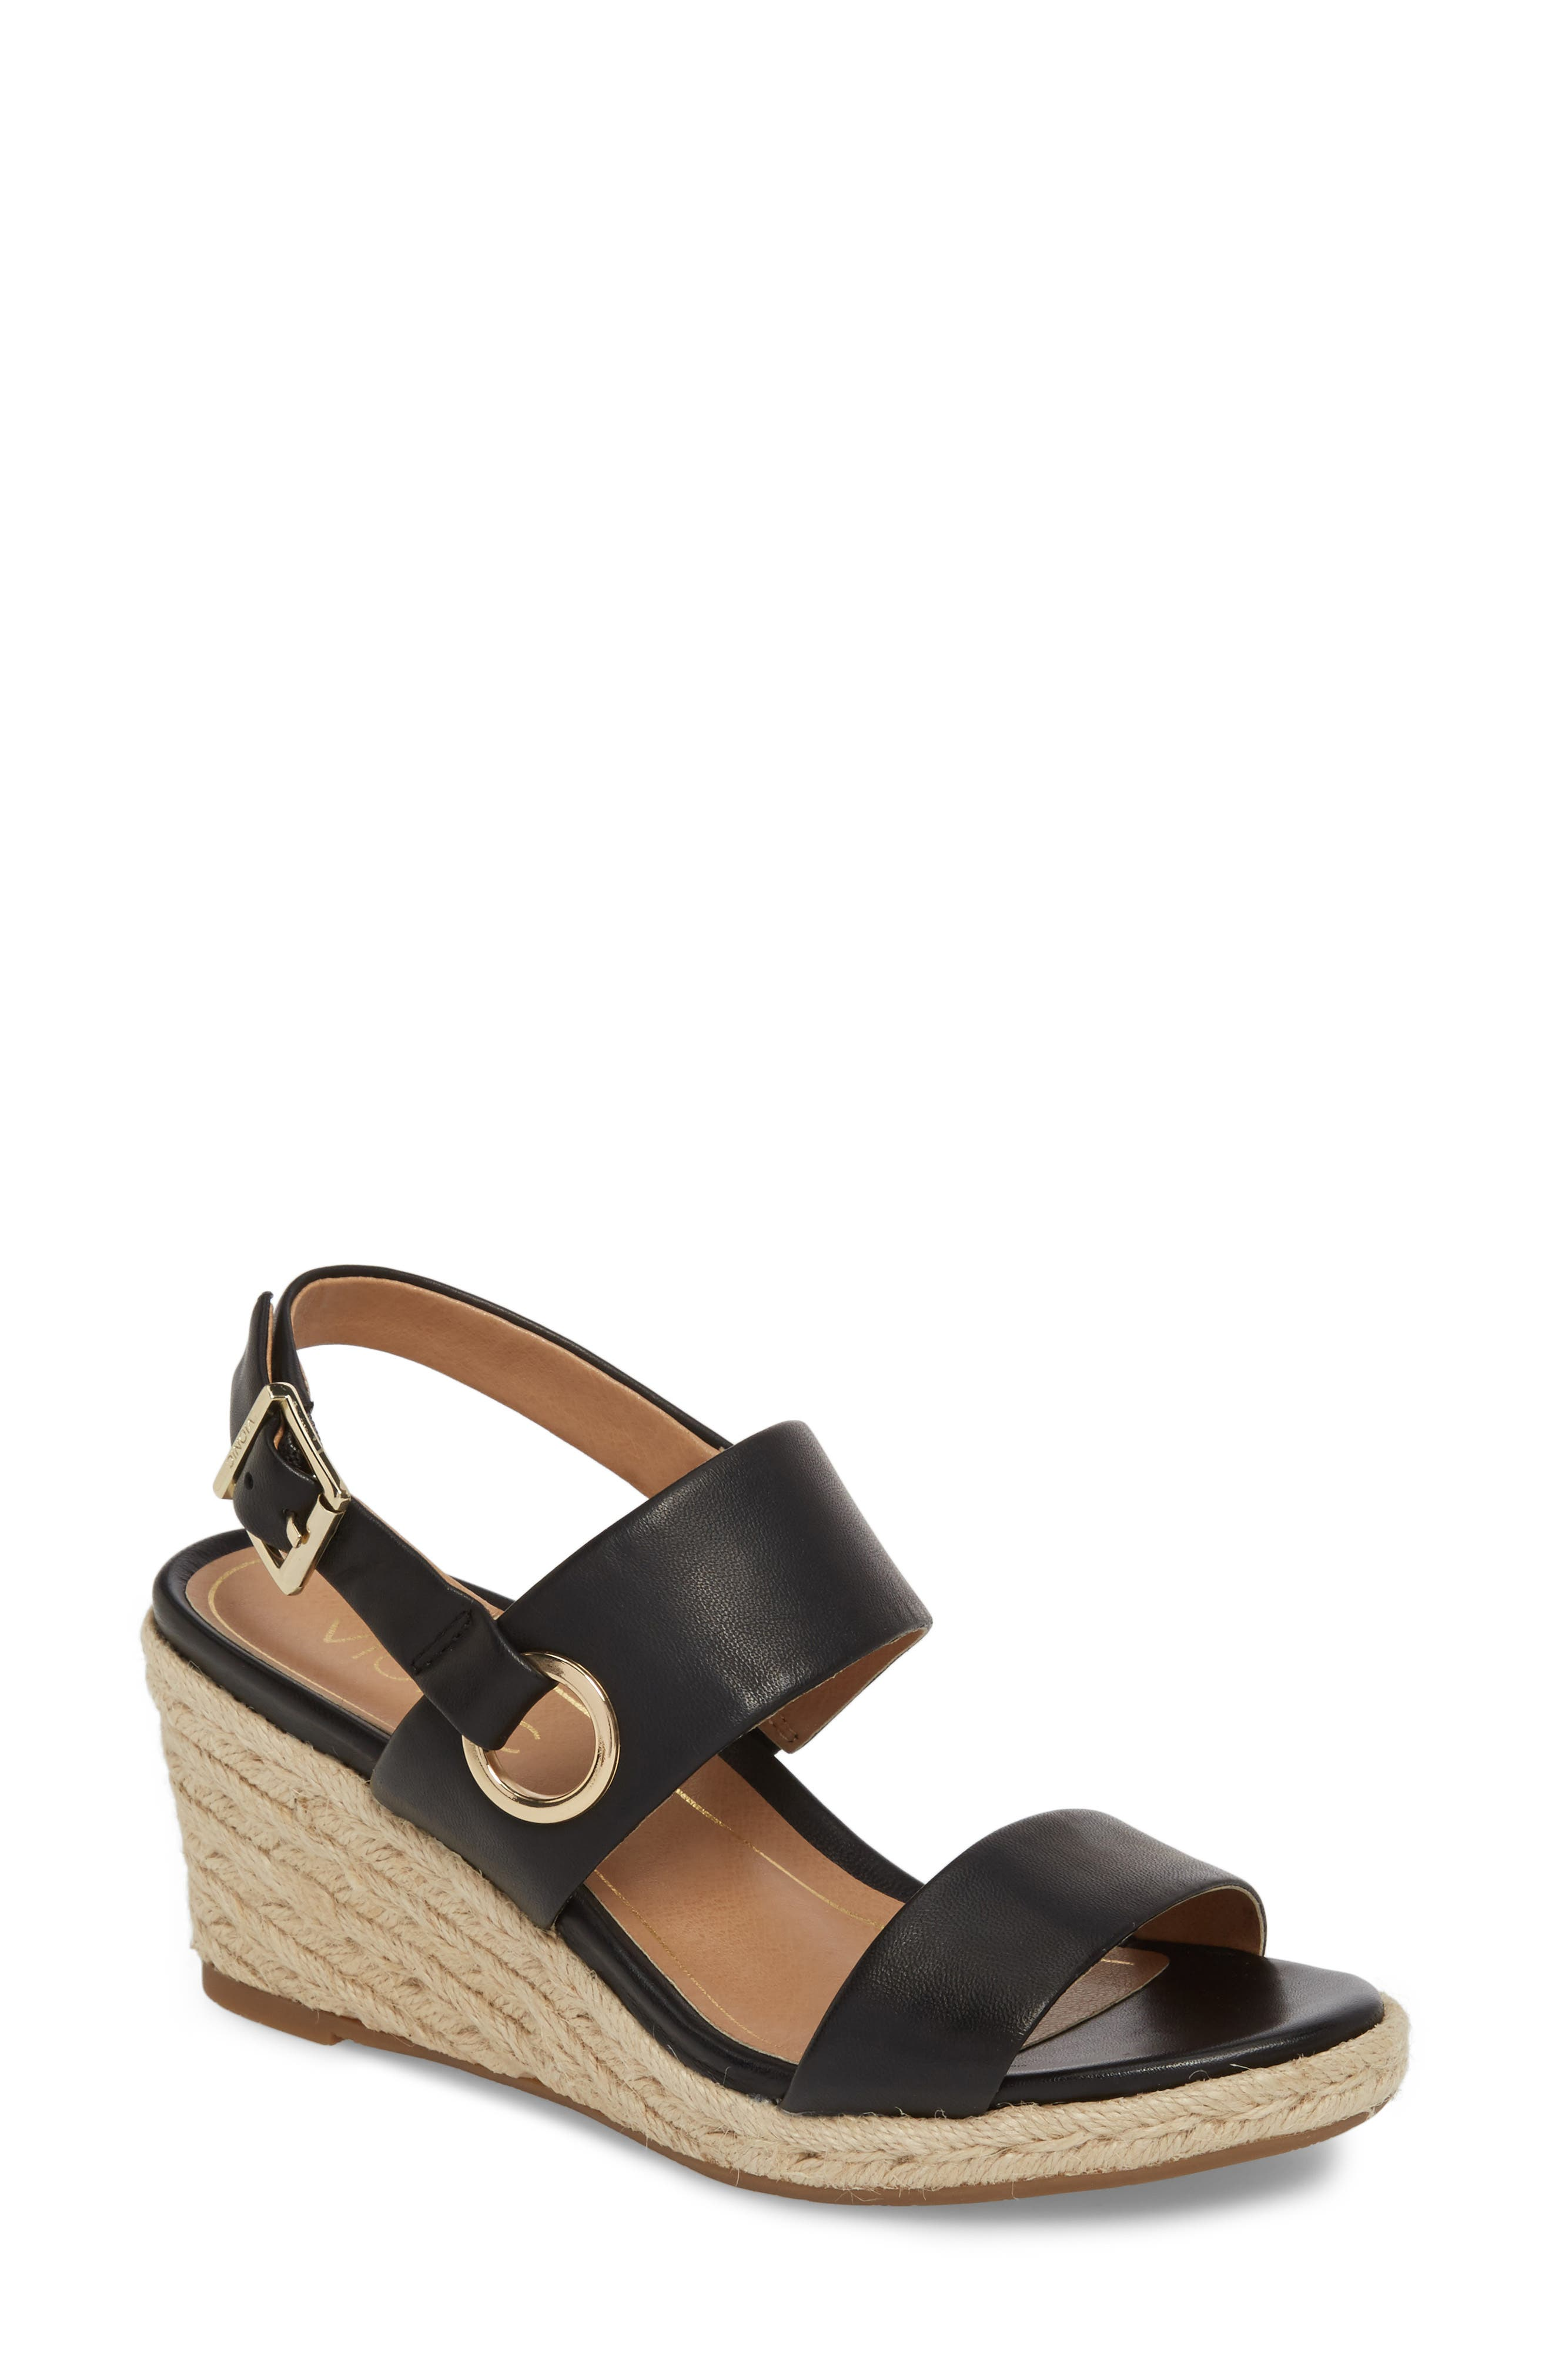 Vero Espadrille Wedge,                             Main thumbnail 1, color,                             BLACK LEATHER